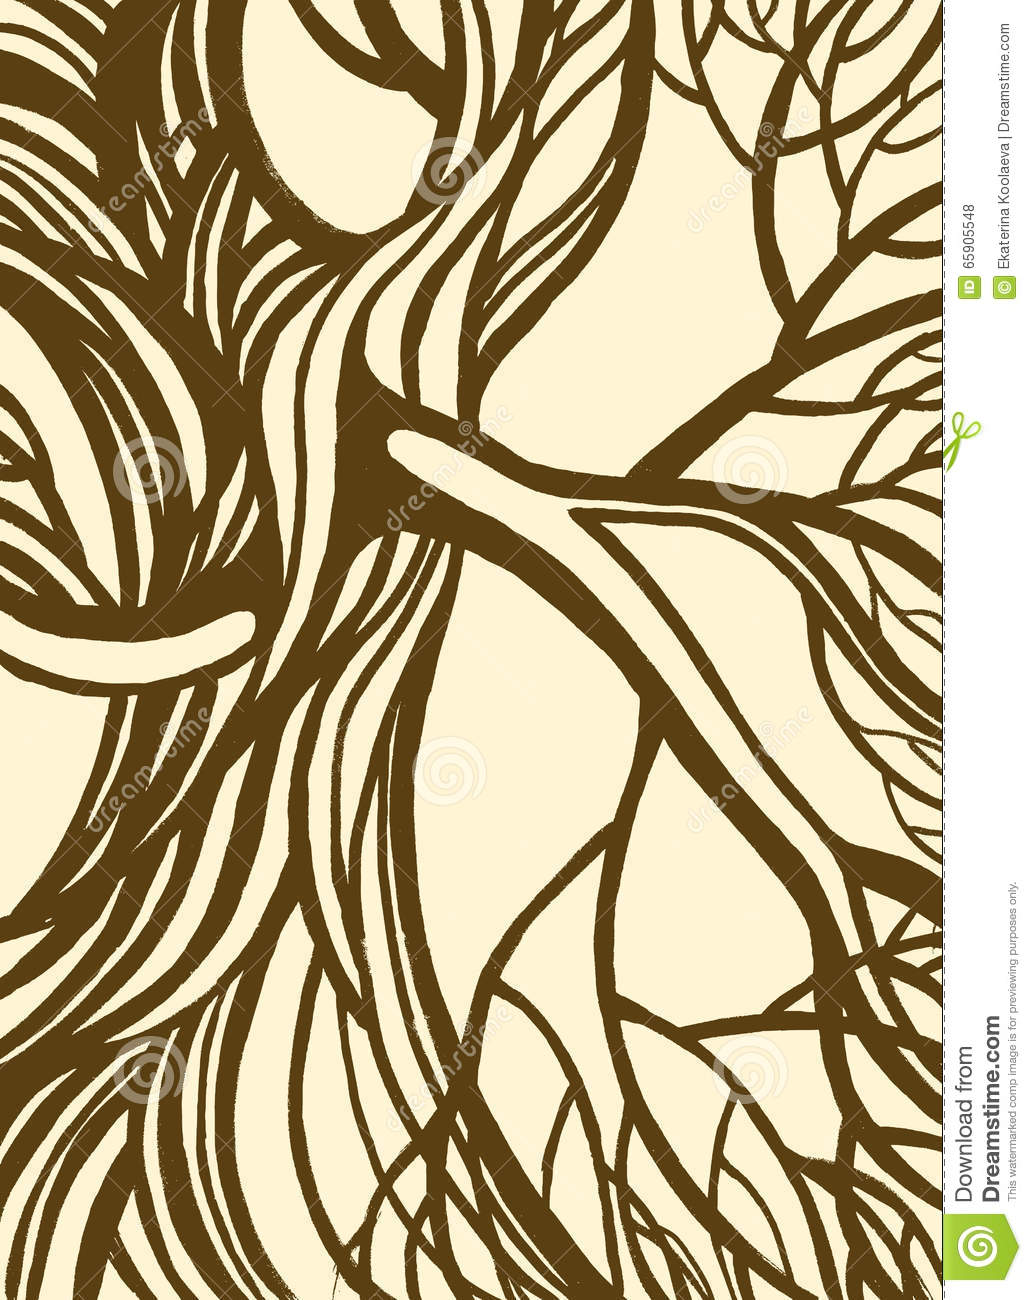 Stylized Abstract Vintage Tree. Stock Vector - Illustration of ...